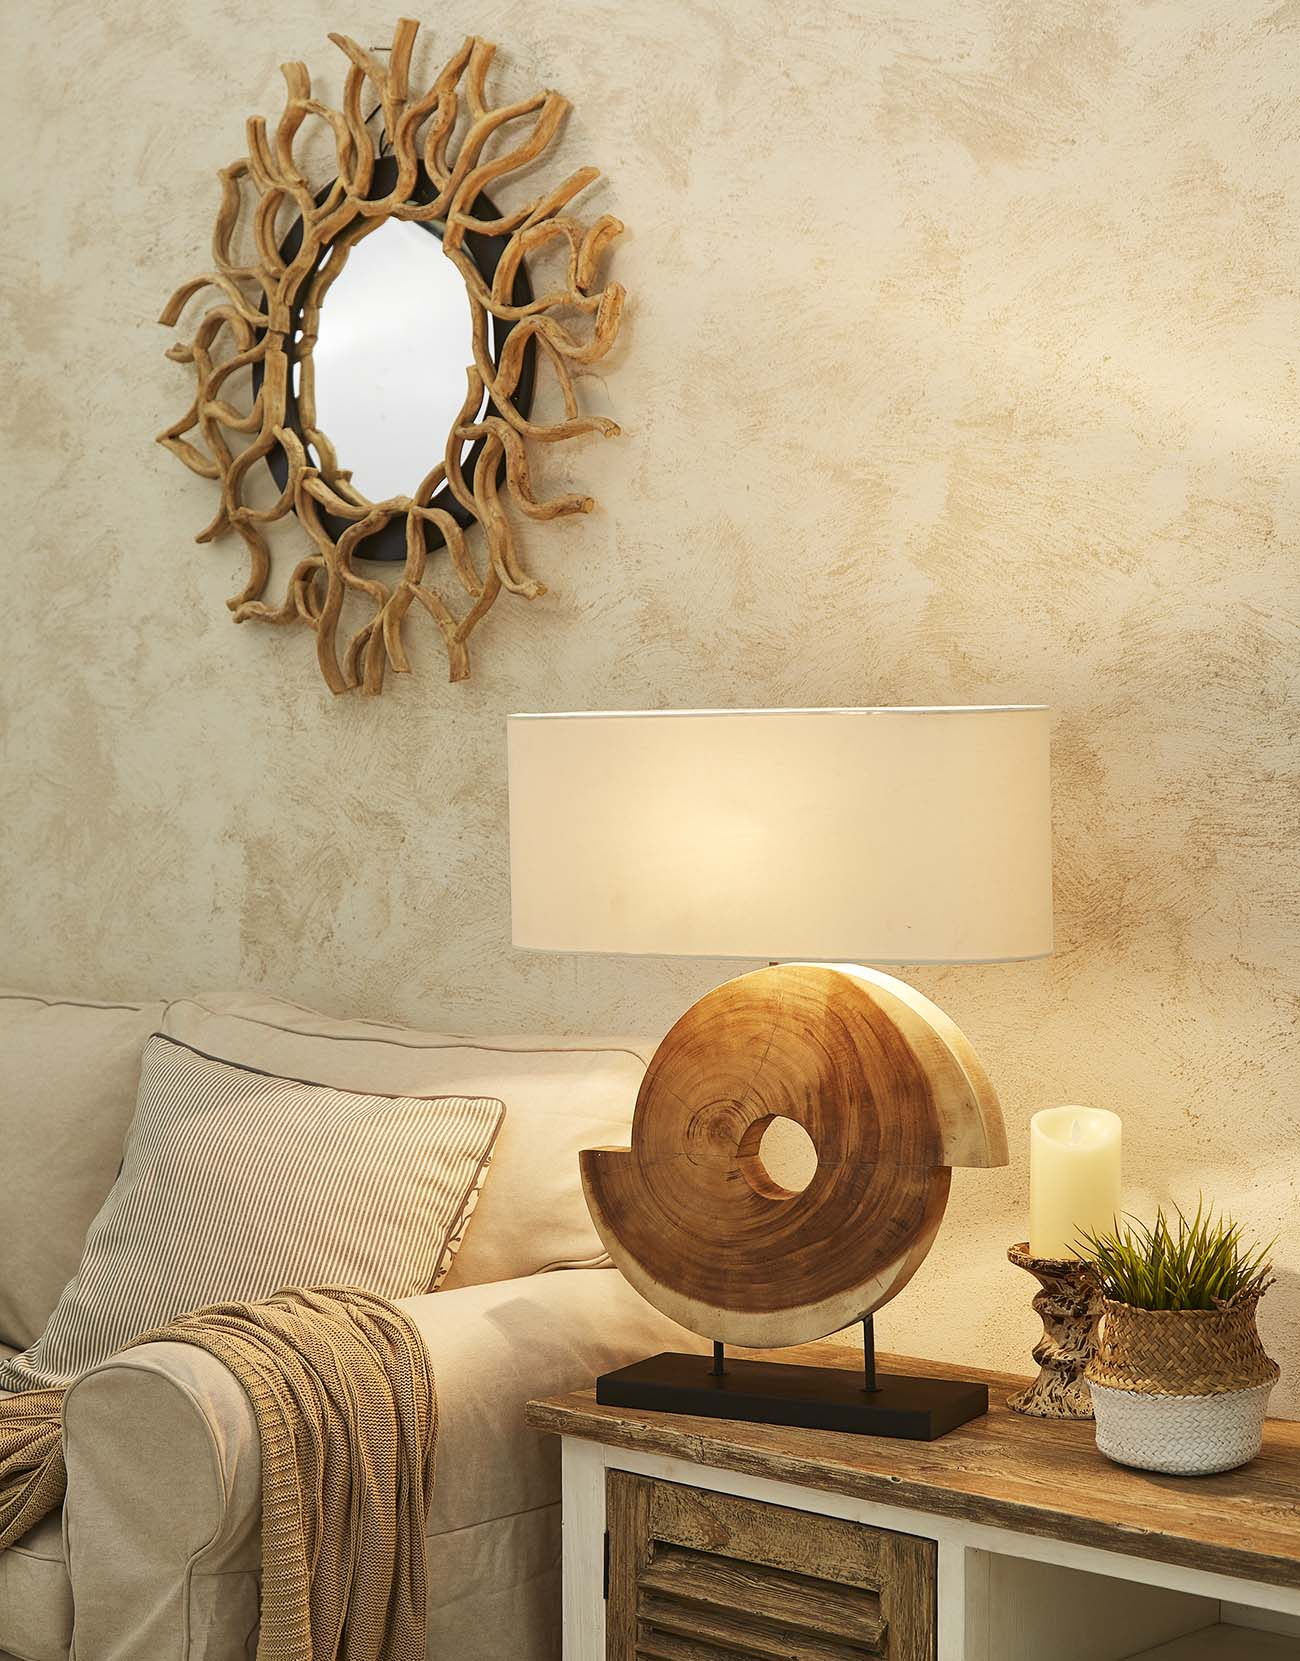 Siab wood table lamp product photo #2